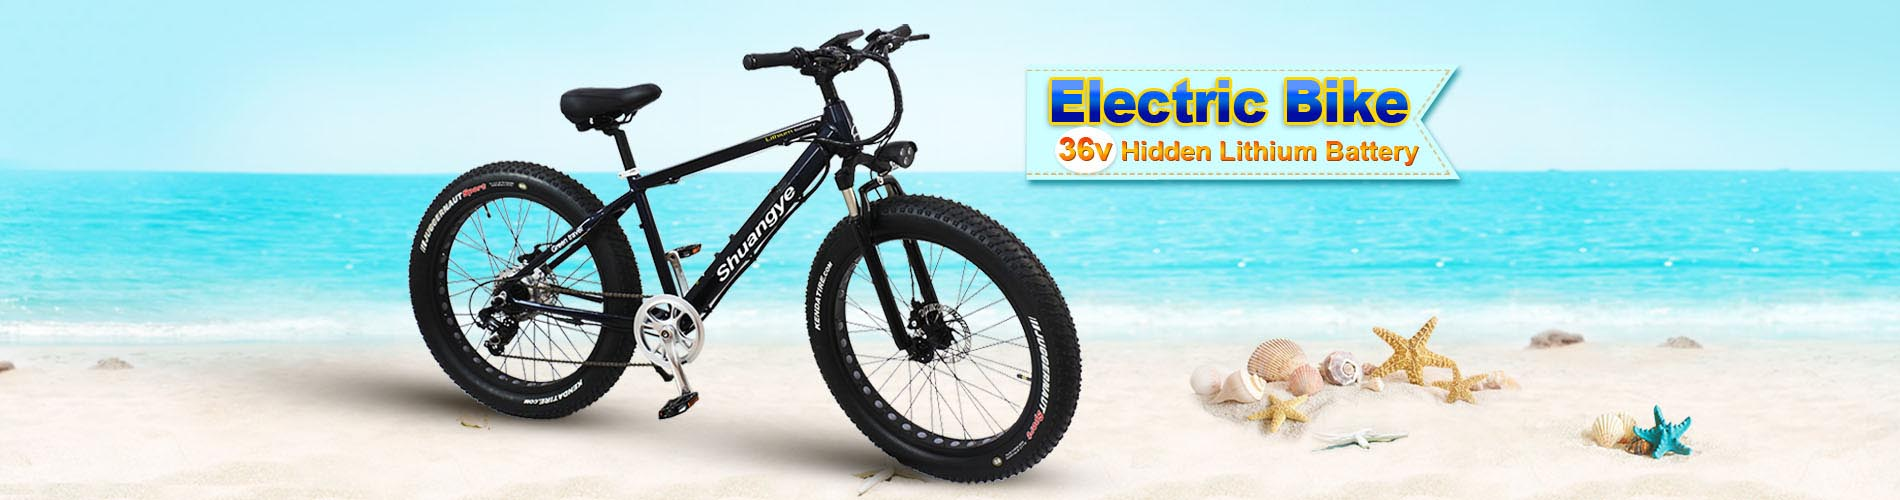 mens electric bicycles 2018 new